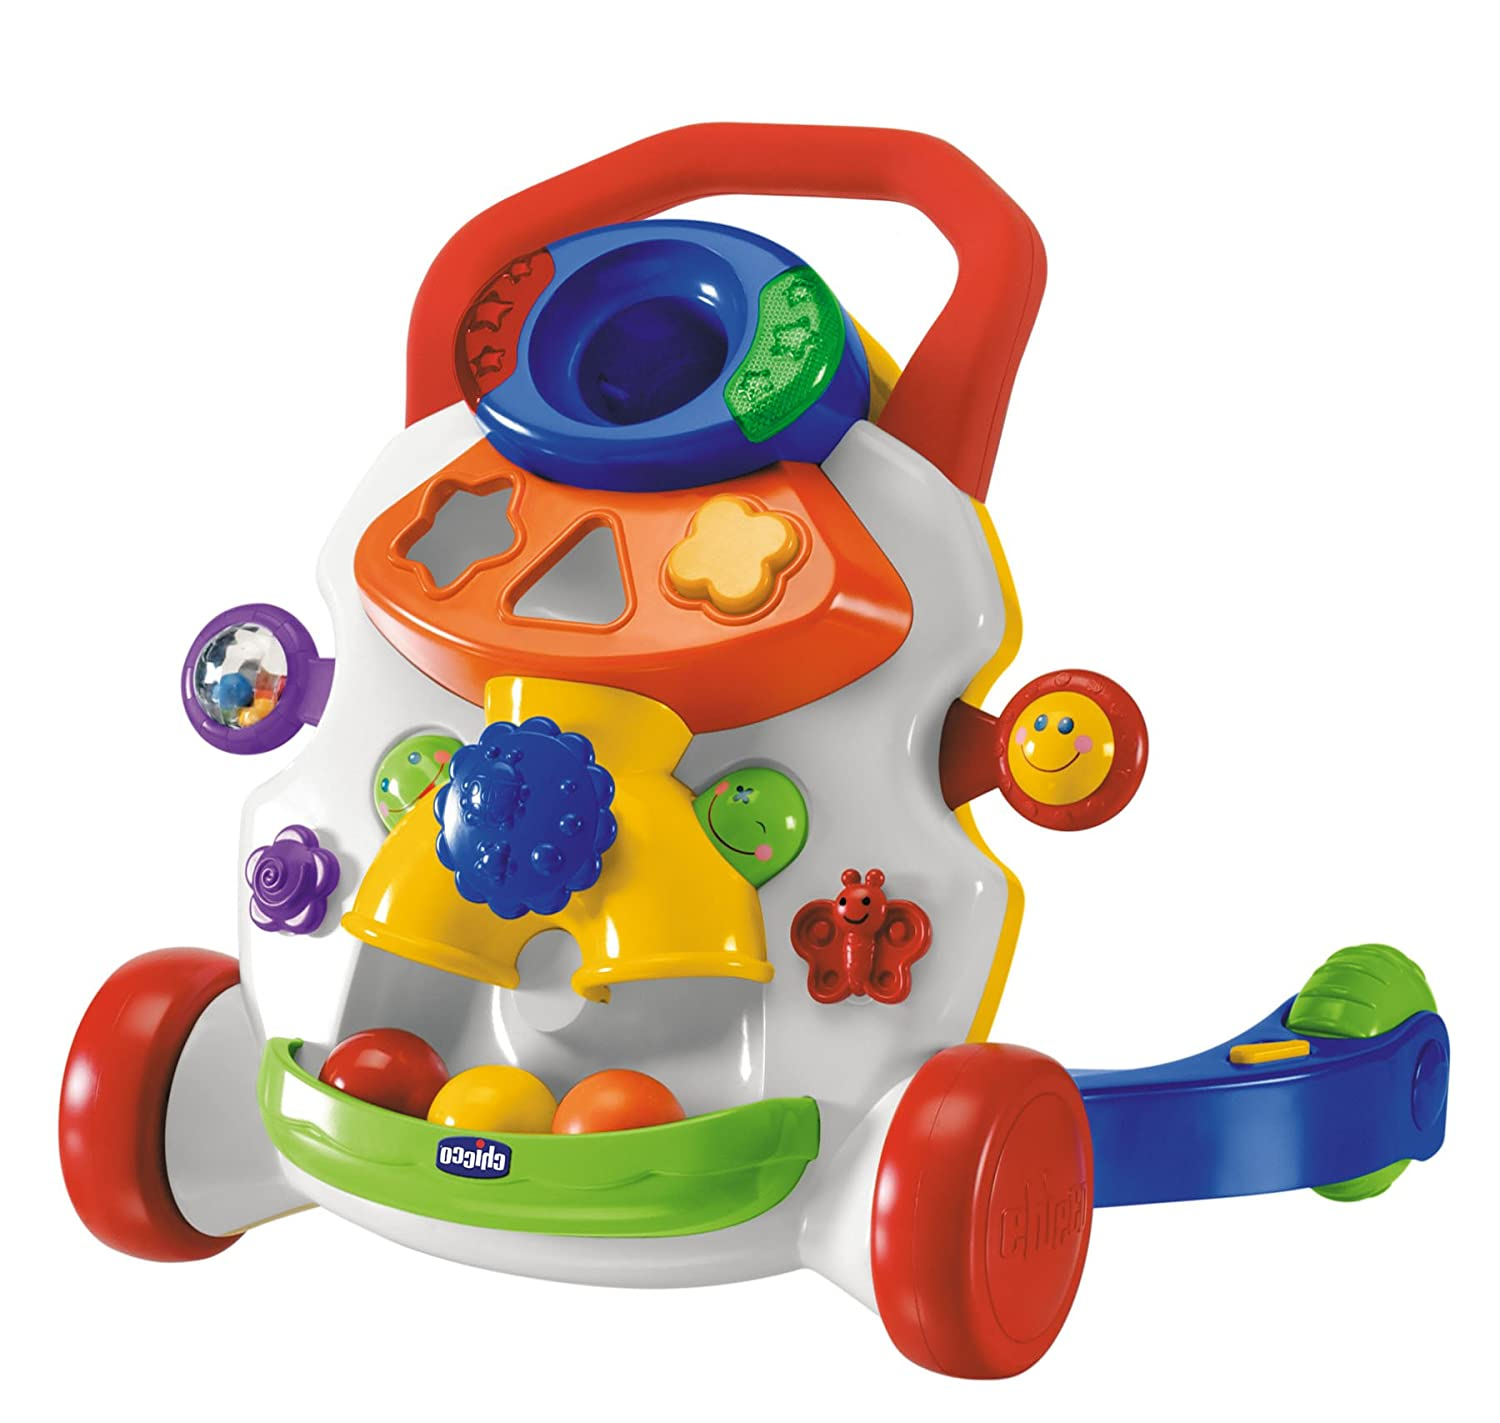 Amazon Chicco Baby Activity Walker Toys & Games